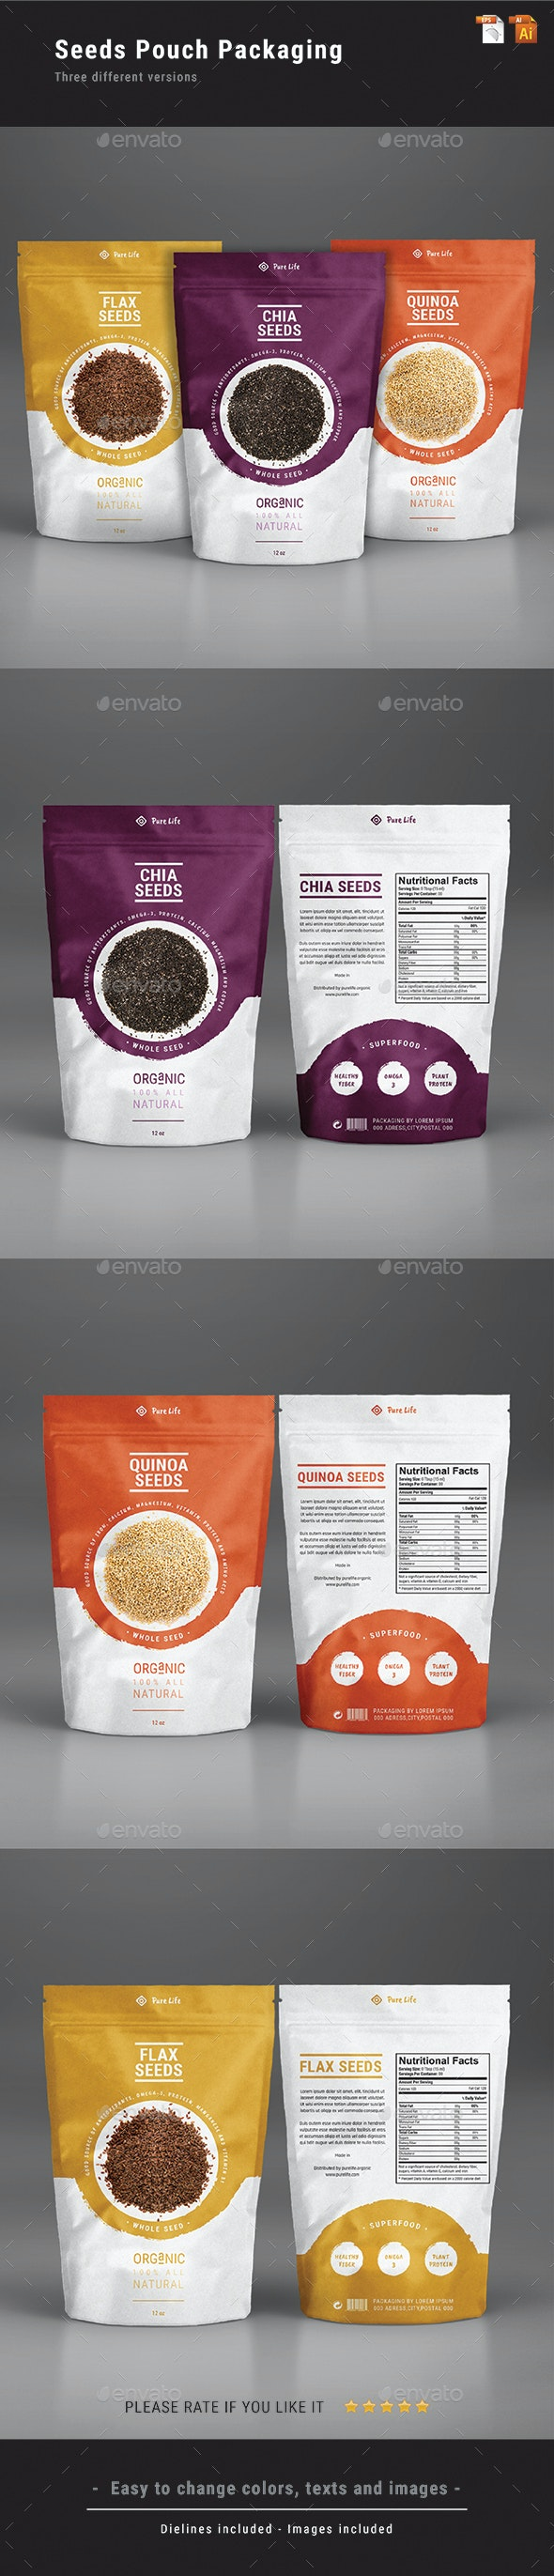 Seeds Pouch Packaging - Packaging Print Templates